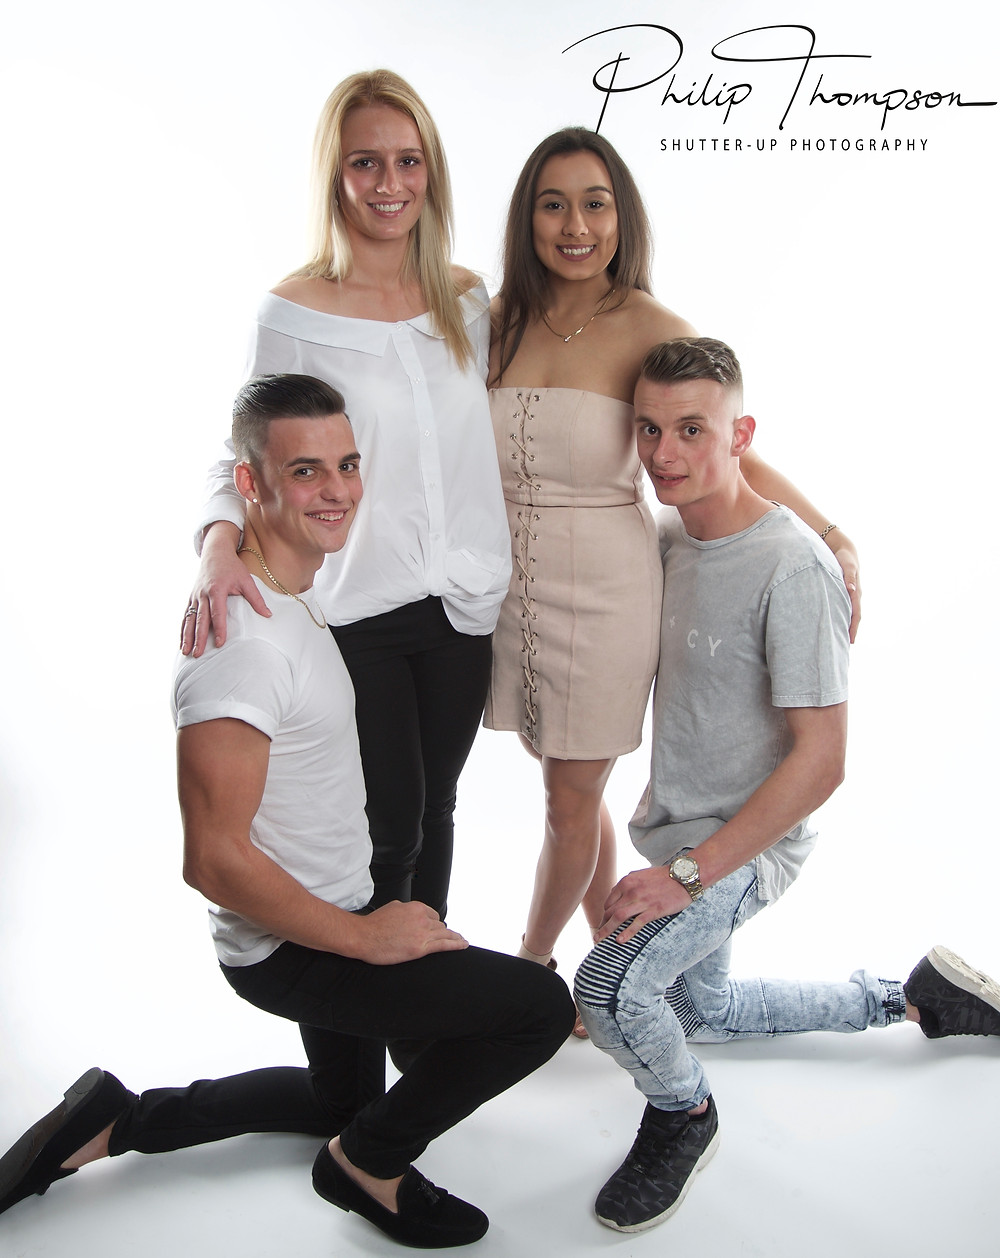 The birthday boy Ronnie was joined in the shoot by his Brother Tony and their partners Danijela and Ebony.